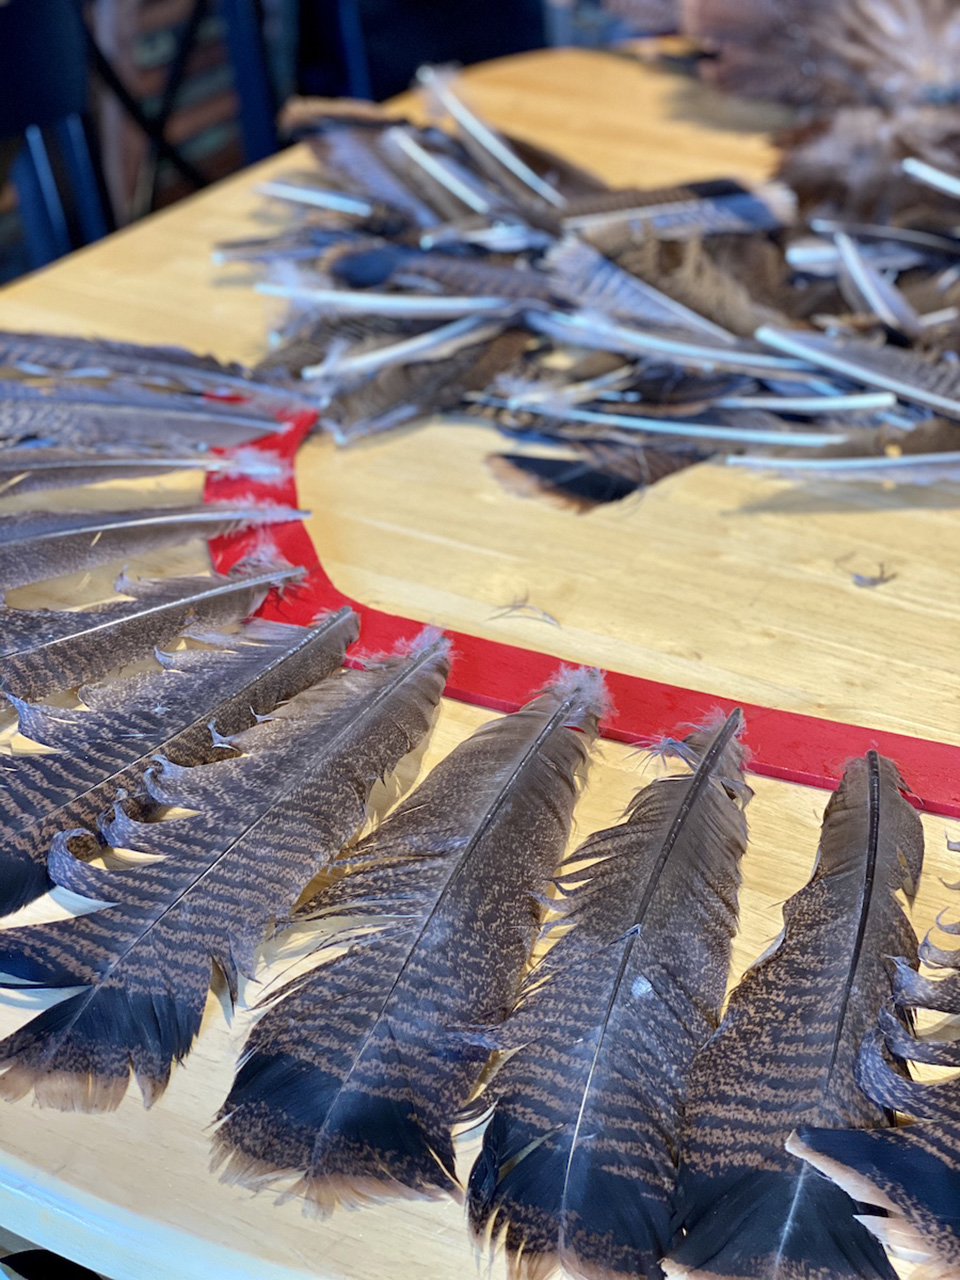 Laying out the turkey feathers for spacing before gluing